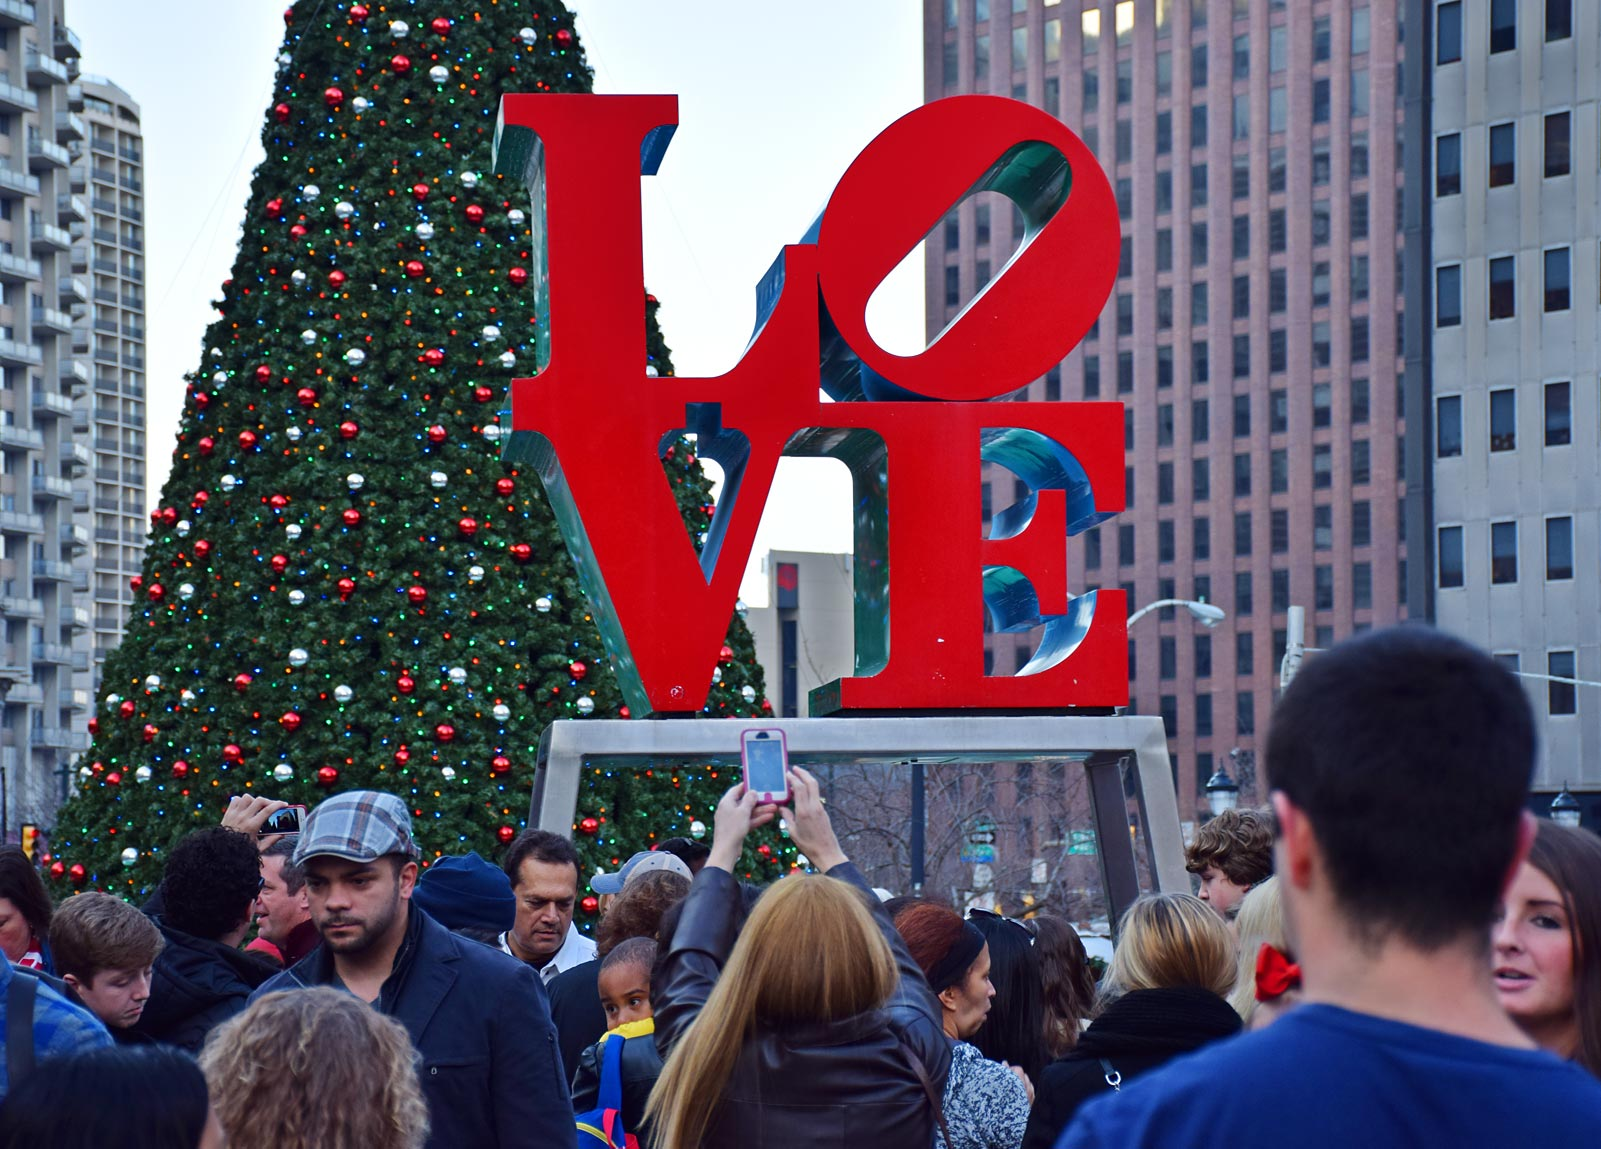 Philadelphia Christmas Events 2019 Christmas 2019 in Philadelphia   Philadelphia Christmas Events